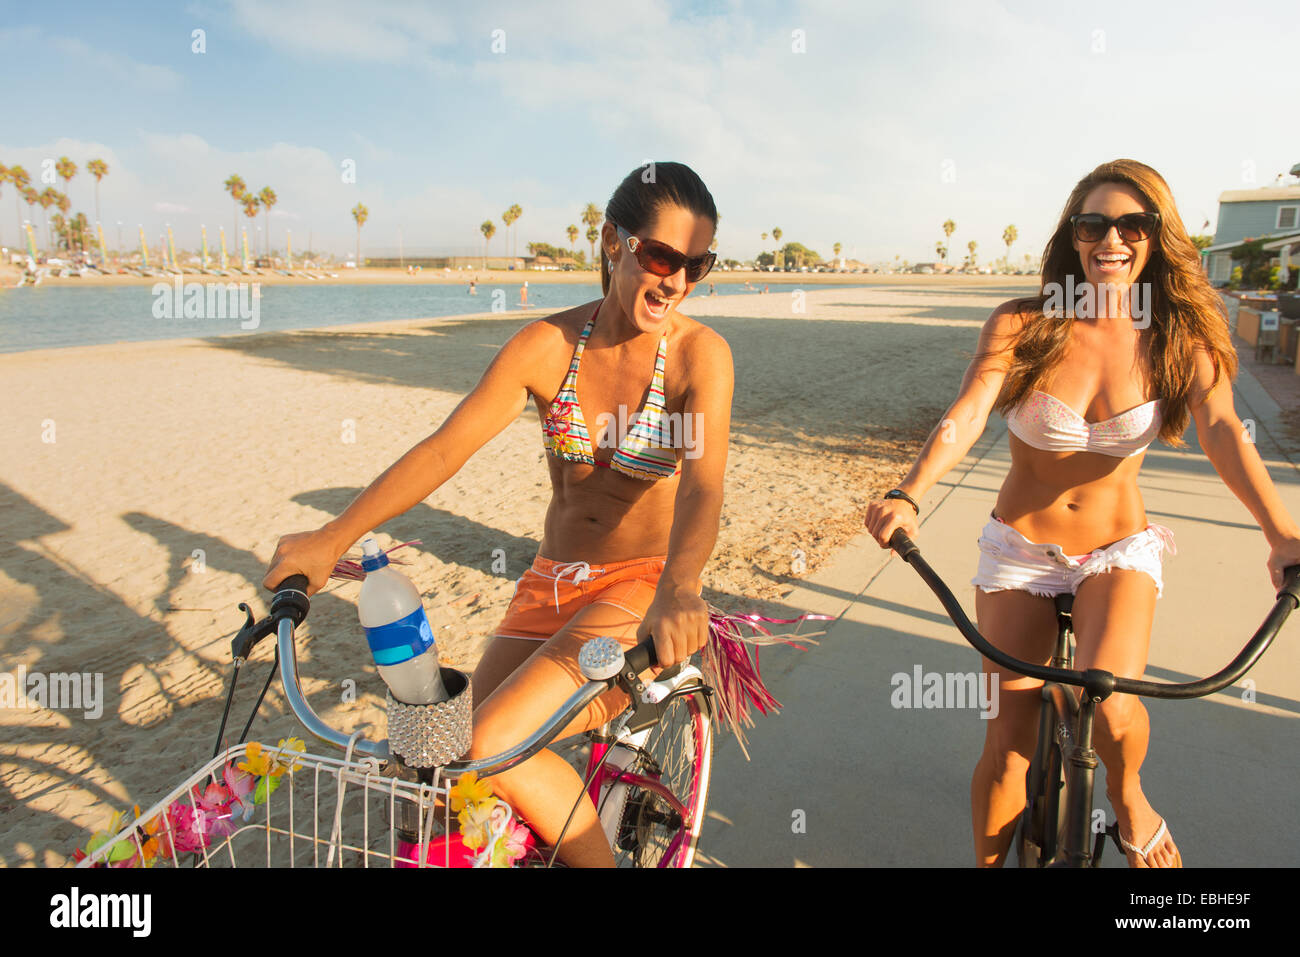 Two women cycling on beach, Mission Bay, San Diego, California, USA - Stock Image